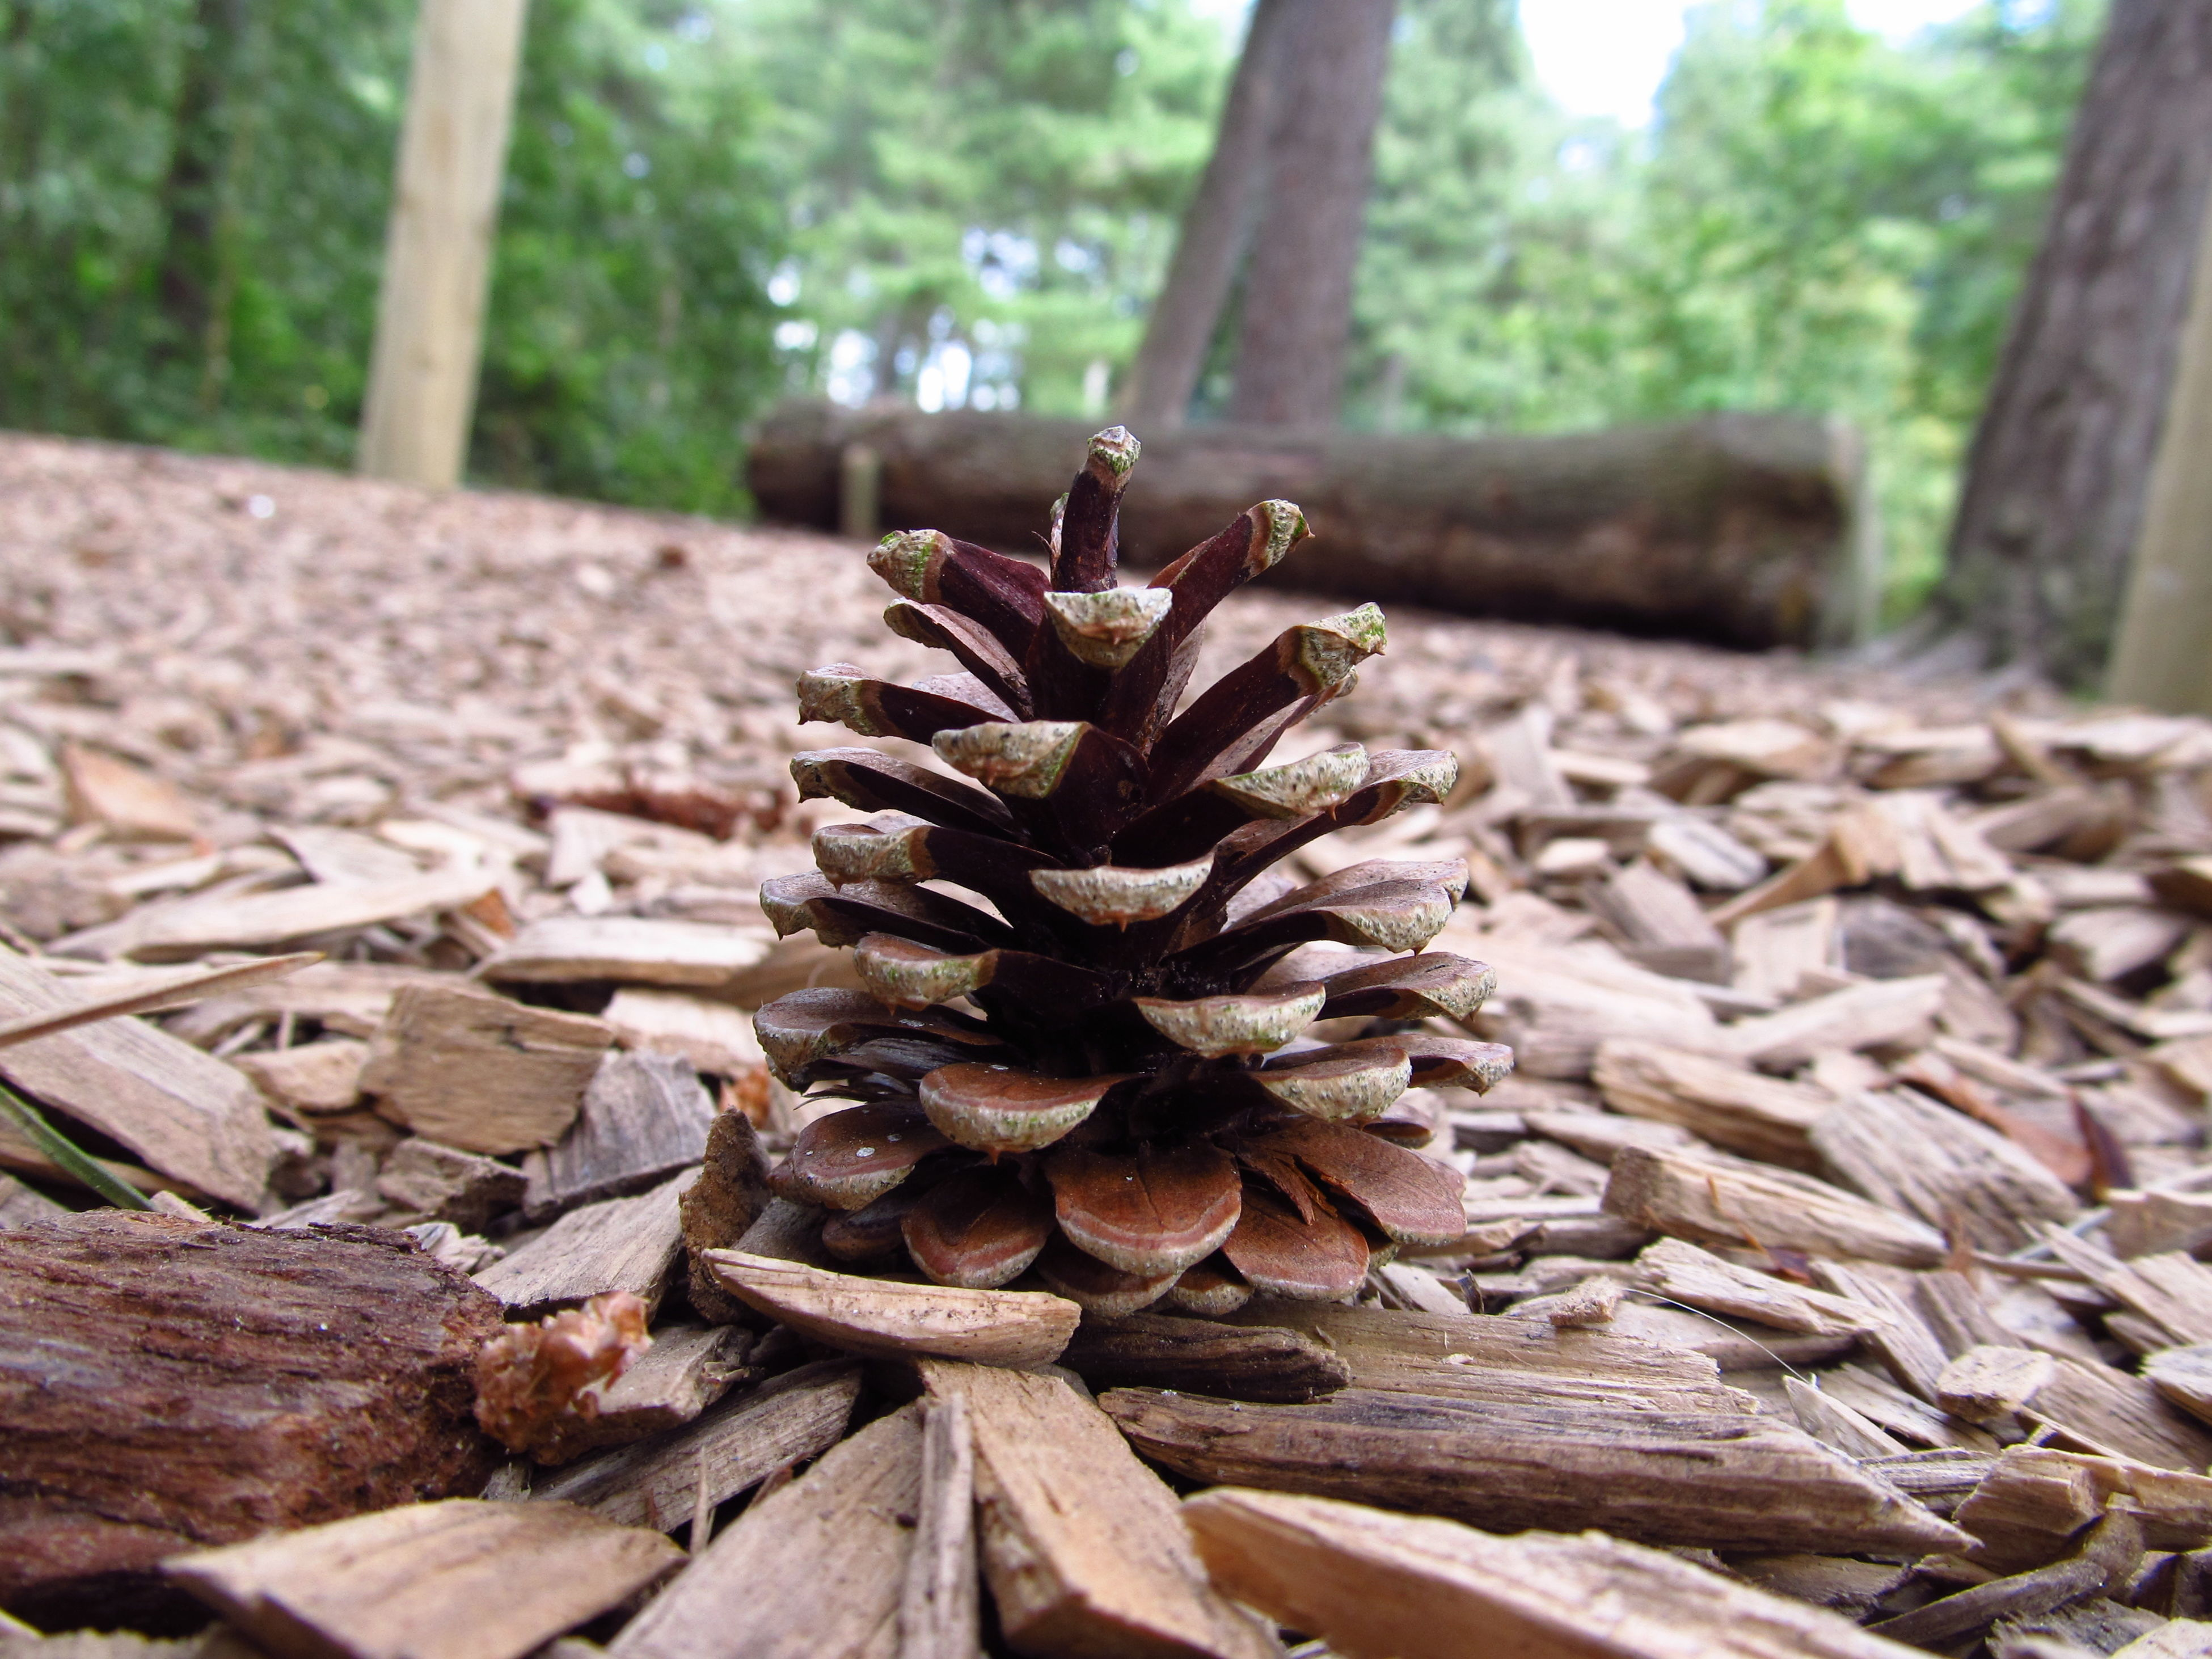 nature, tree, pine cone, no people, focus on foreground, close-up, outdoors, growth, beauty in nature, tranquility, day, flower head